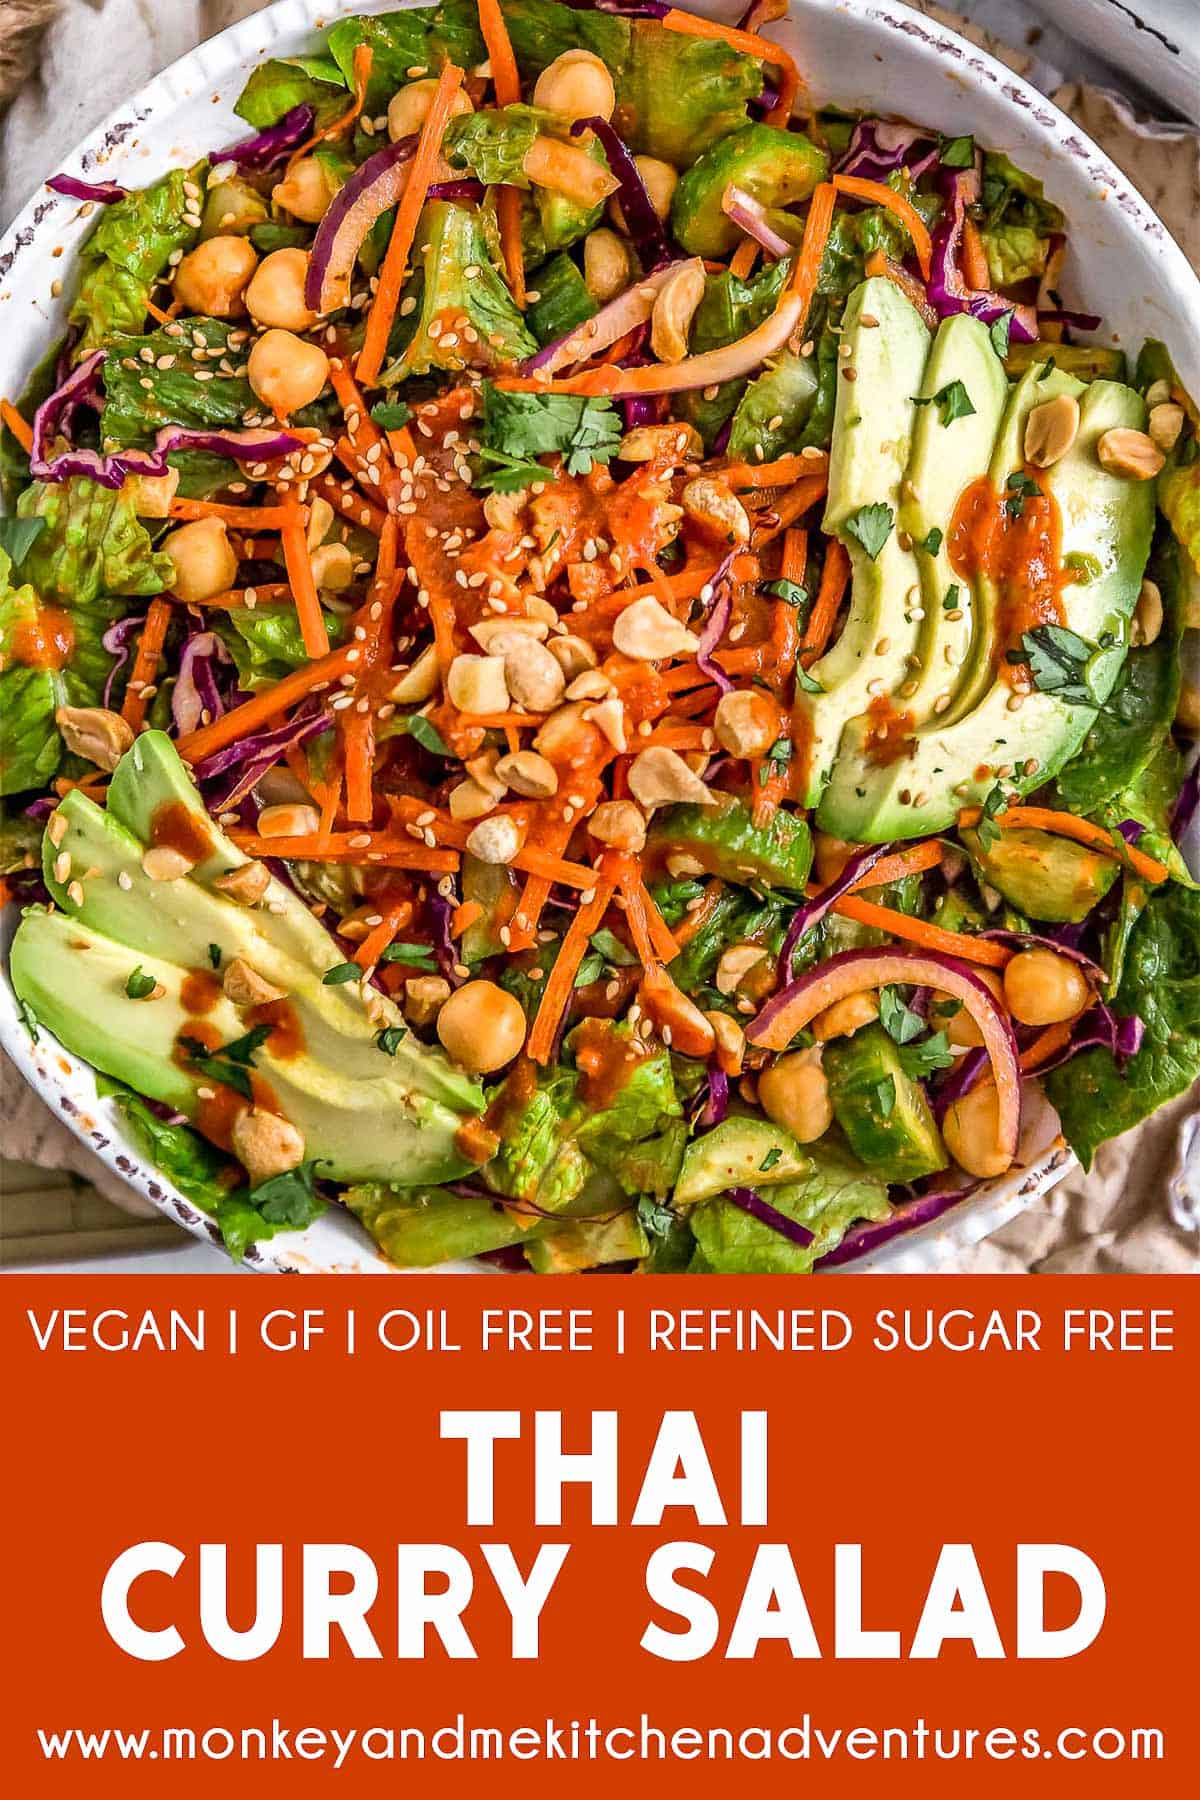 Thai Curry Salad with text description